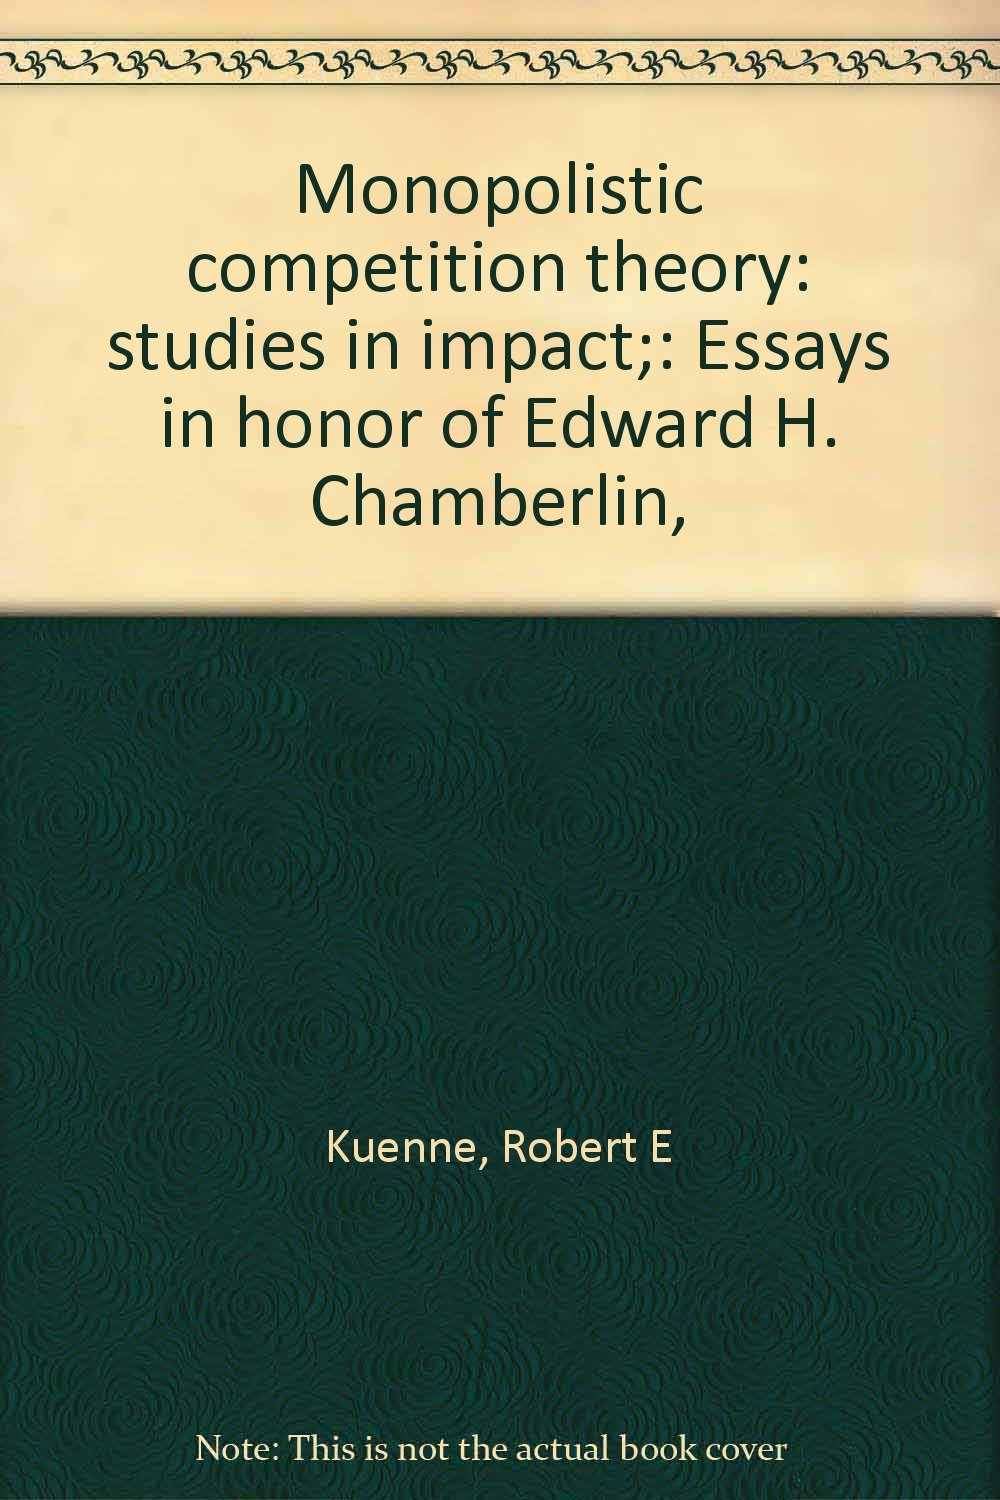 Barack Obama Essay Paper Monopolistic Competition Theory Studies In Impact Essays In Honor Of  Edward H Chamberlin  Robert E Chamberlin Edward Kuenne Amazoncom  Books Thesis Statement Example For Essays also High School Argumentative Essay Topics Monopolistic Competition Theory Studies In Impact Essays In Honor  Business Essay Examples